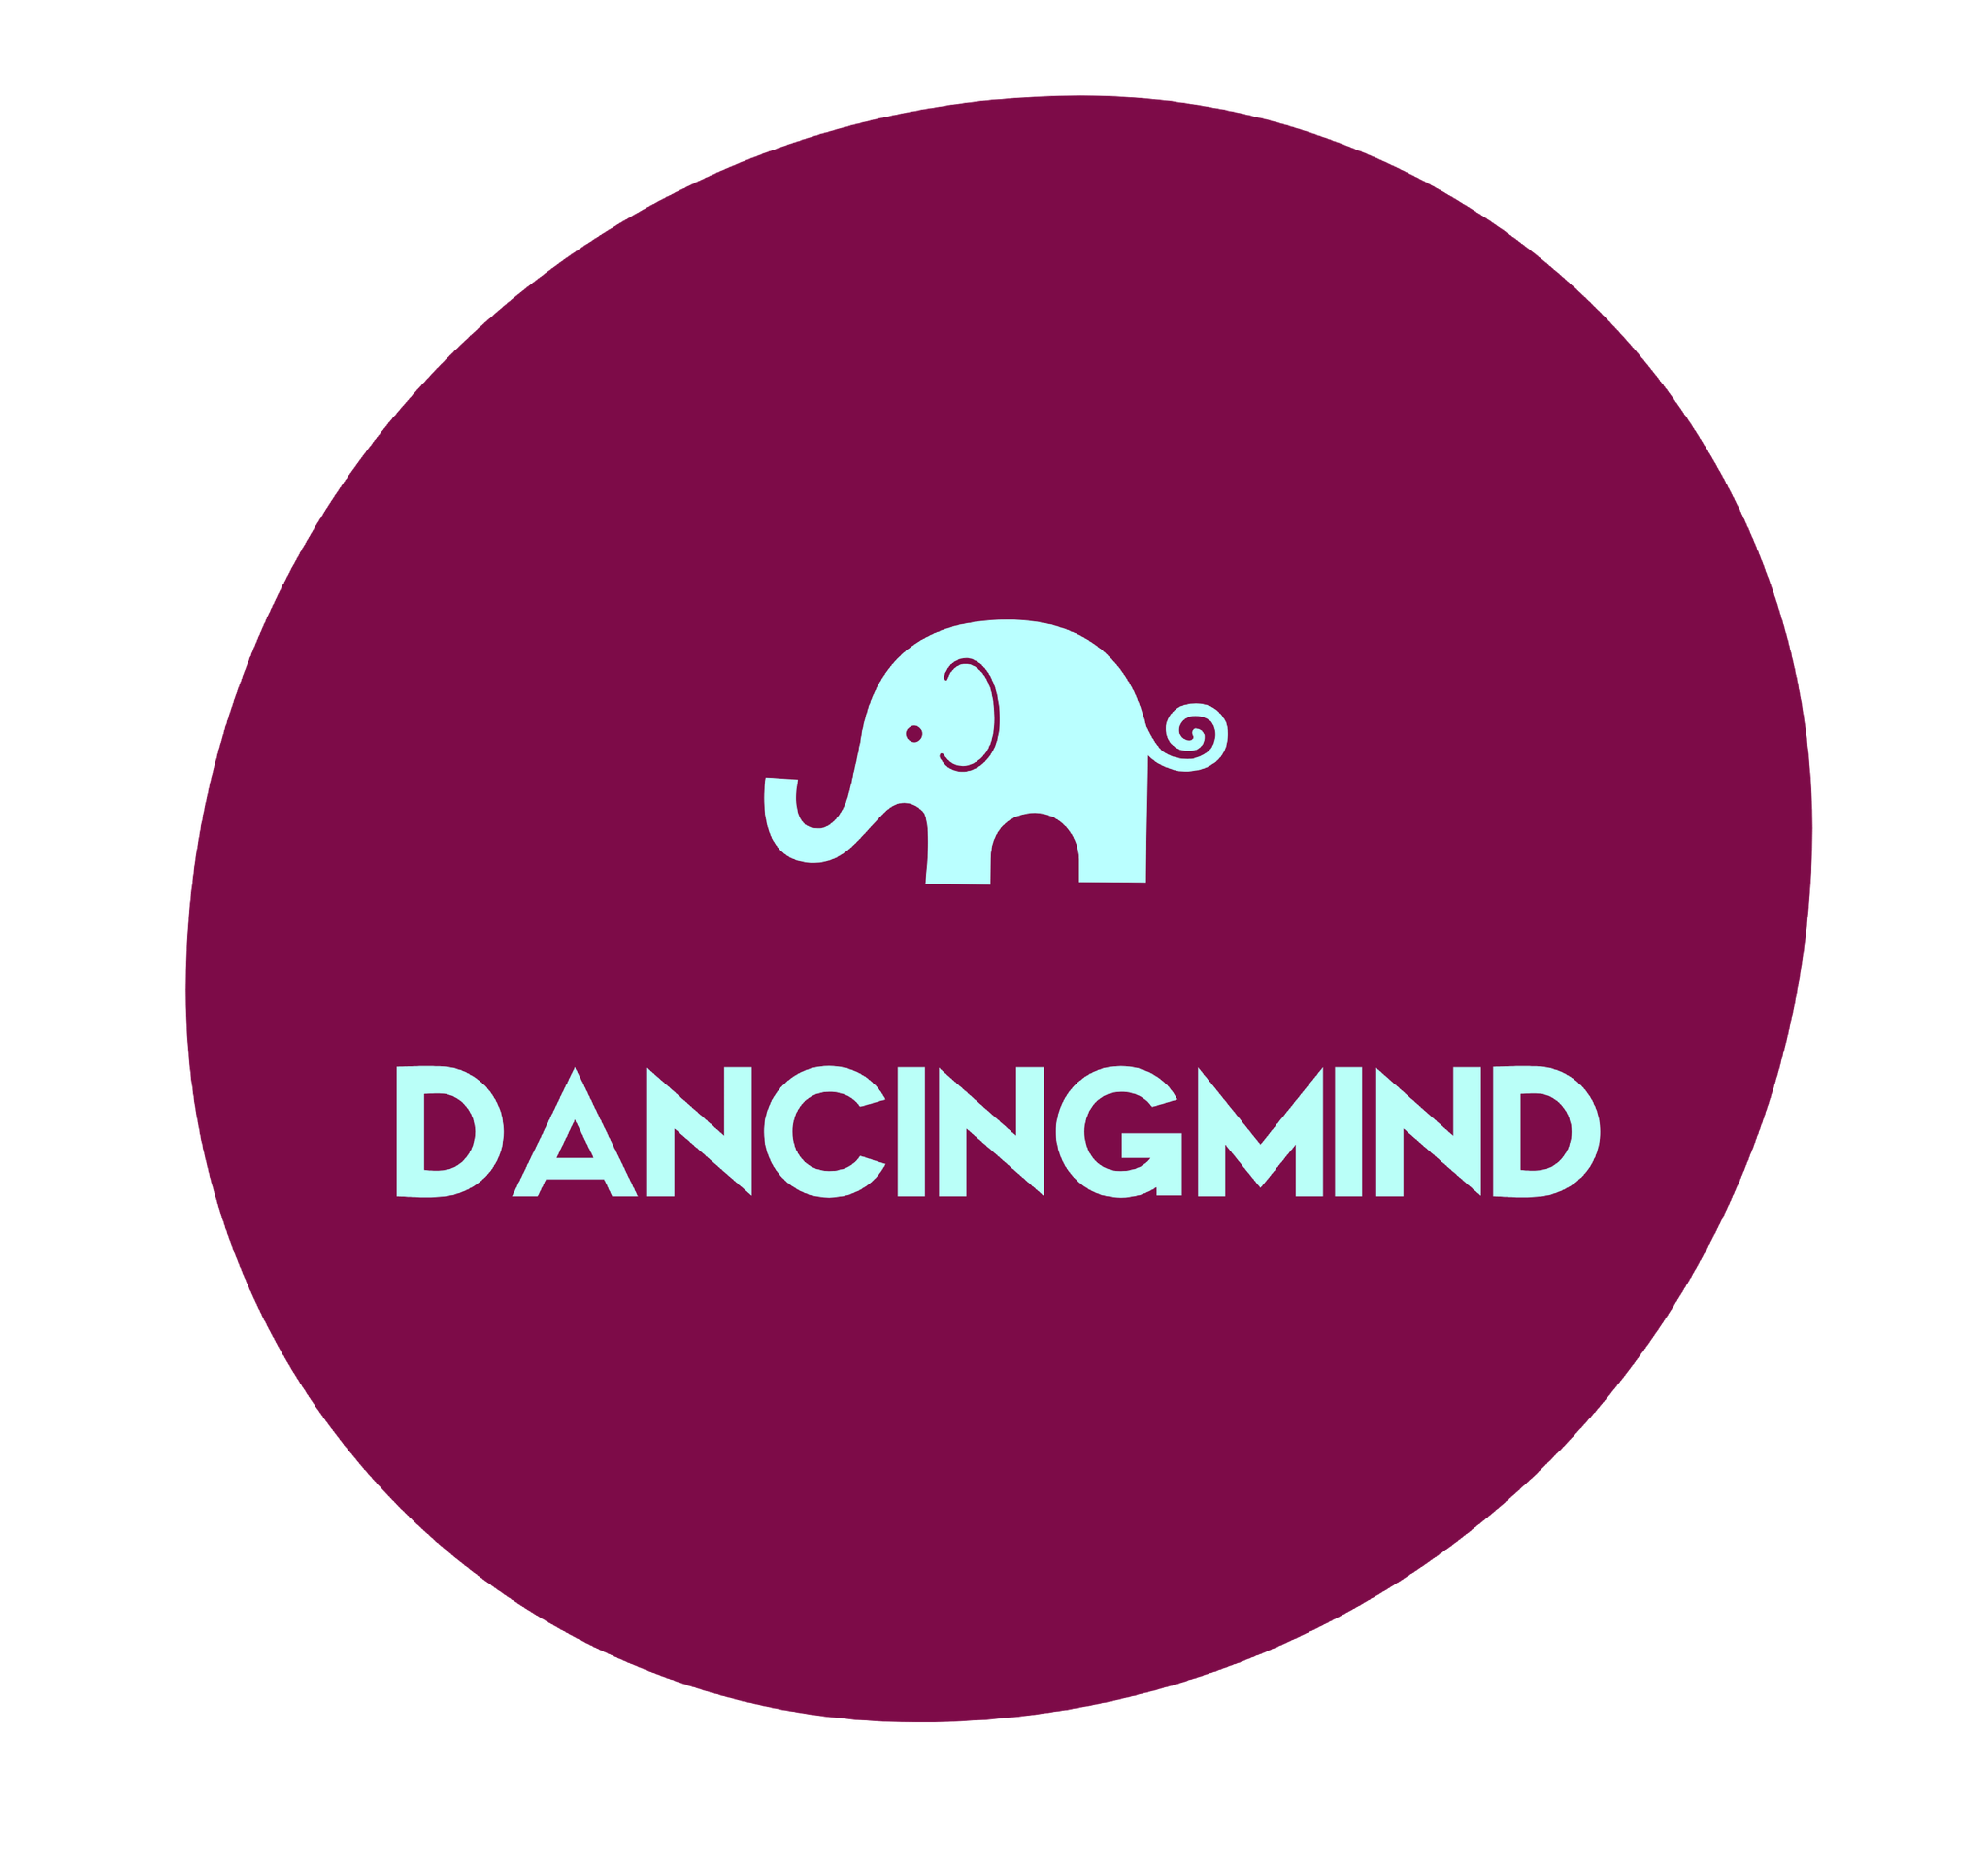 DancingMind